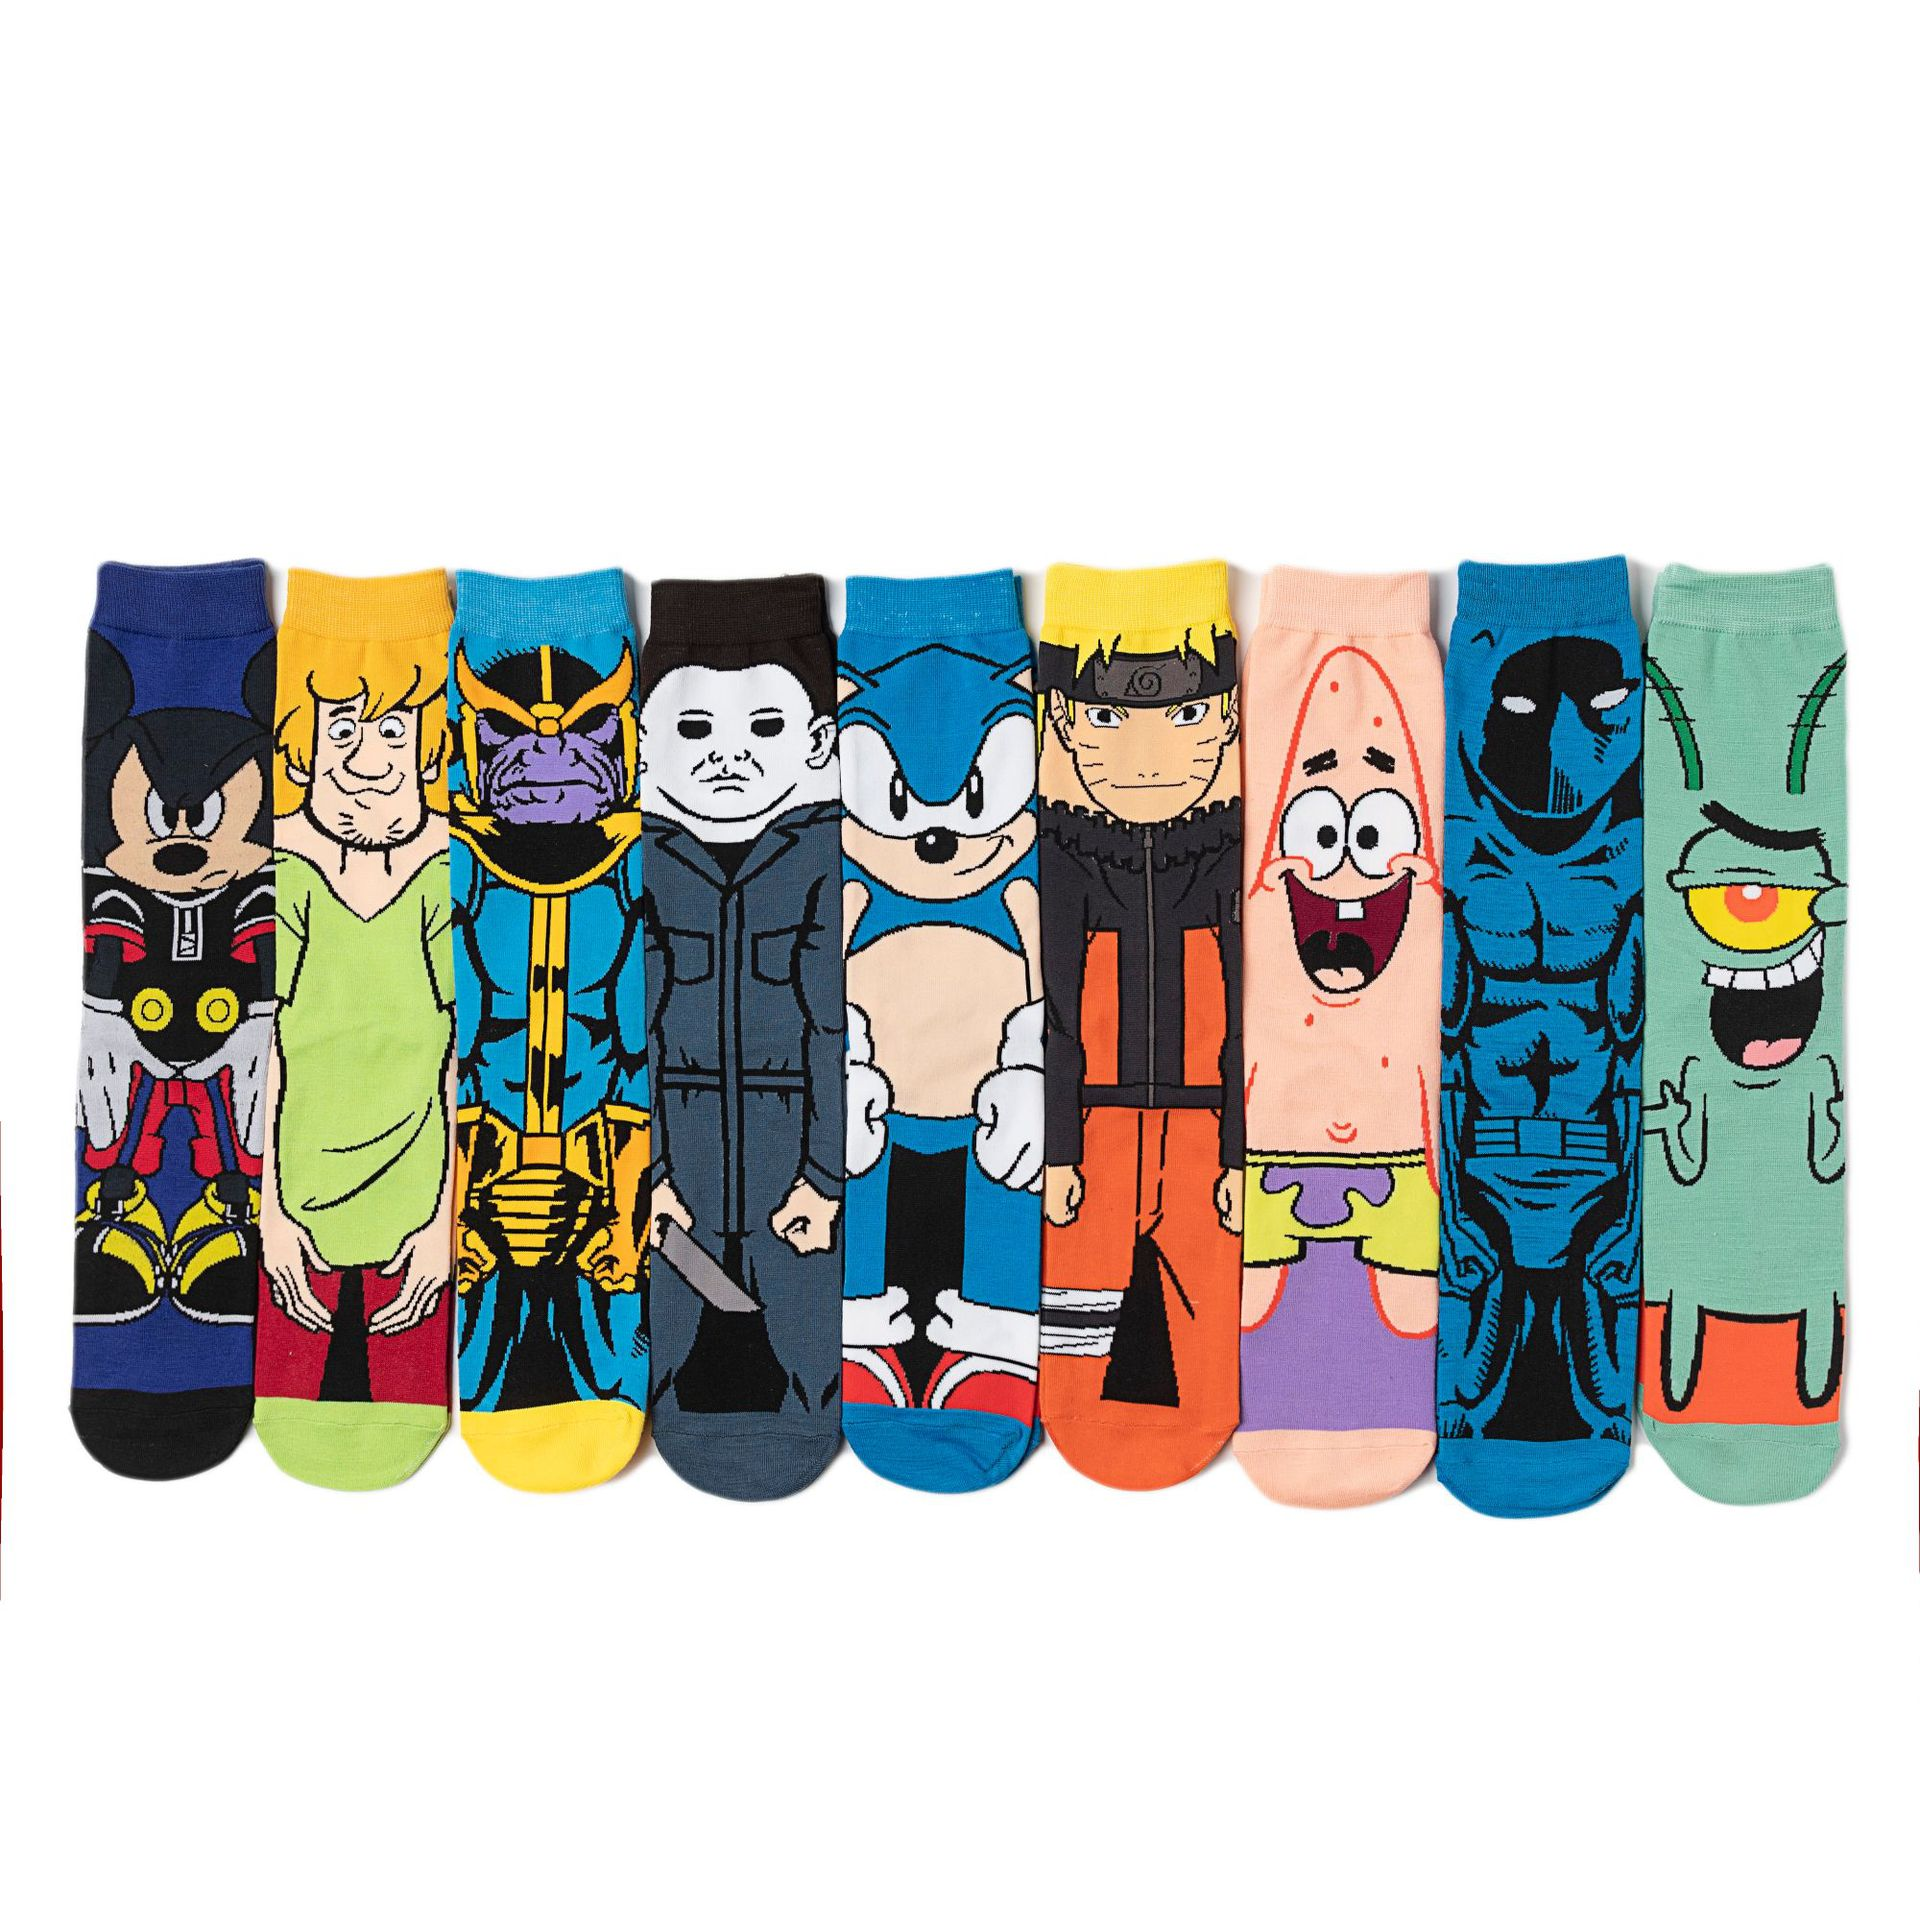 Men Brand Cartoon Character Cotton Socks Harajuku Female Cute Unisex Skatebord Socks Hipster Fashion Animal Print Long Socks